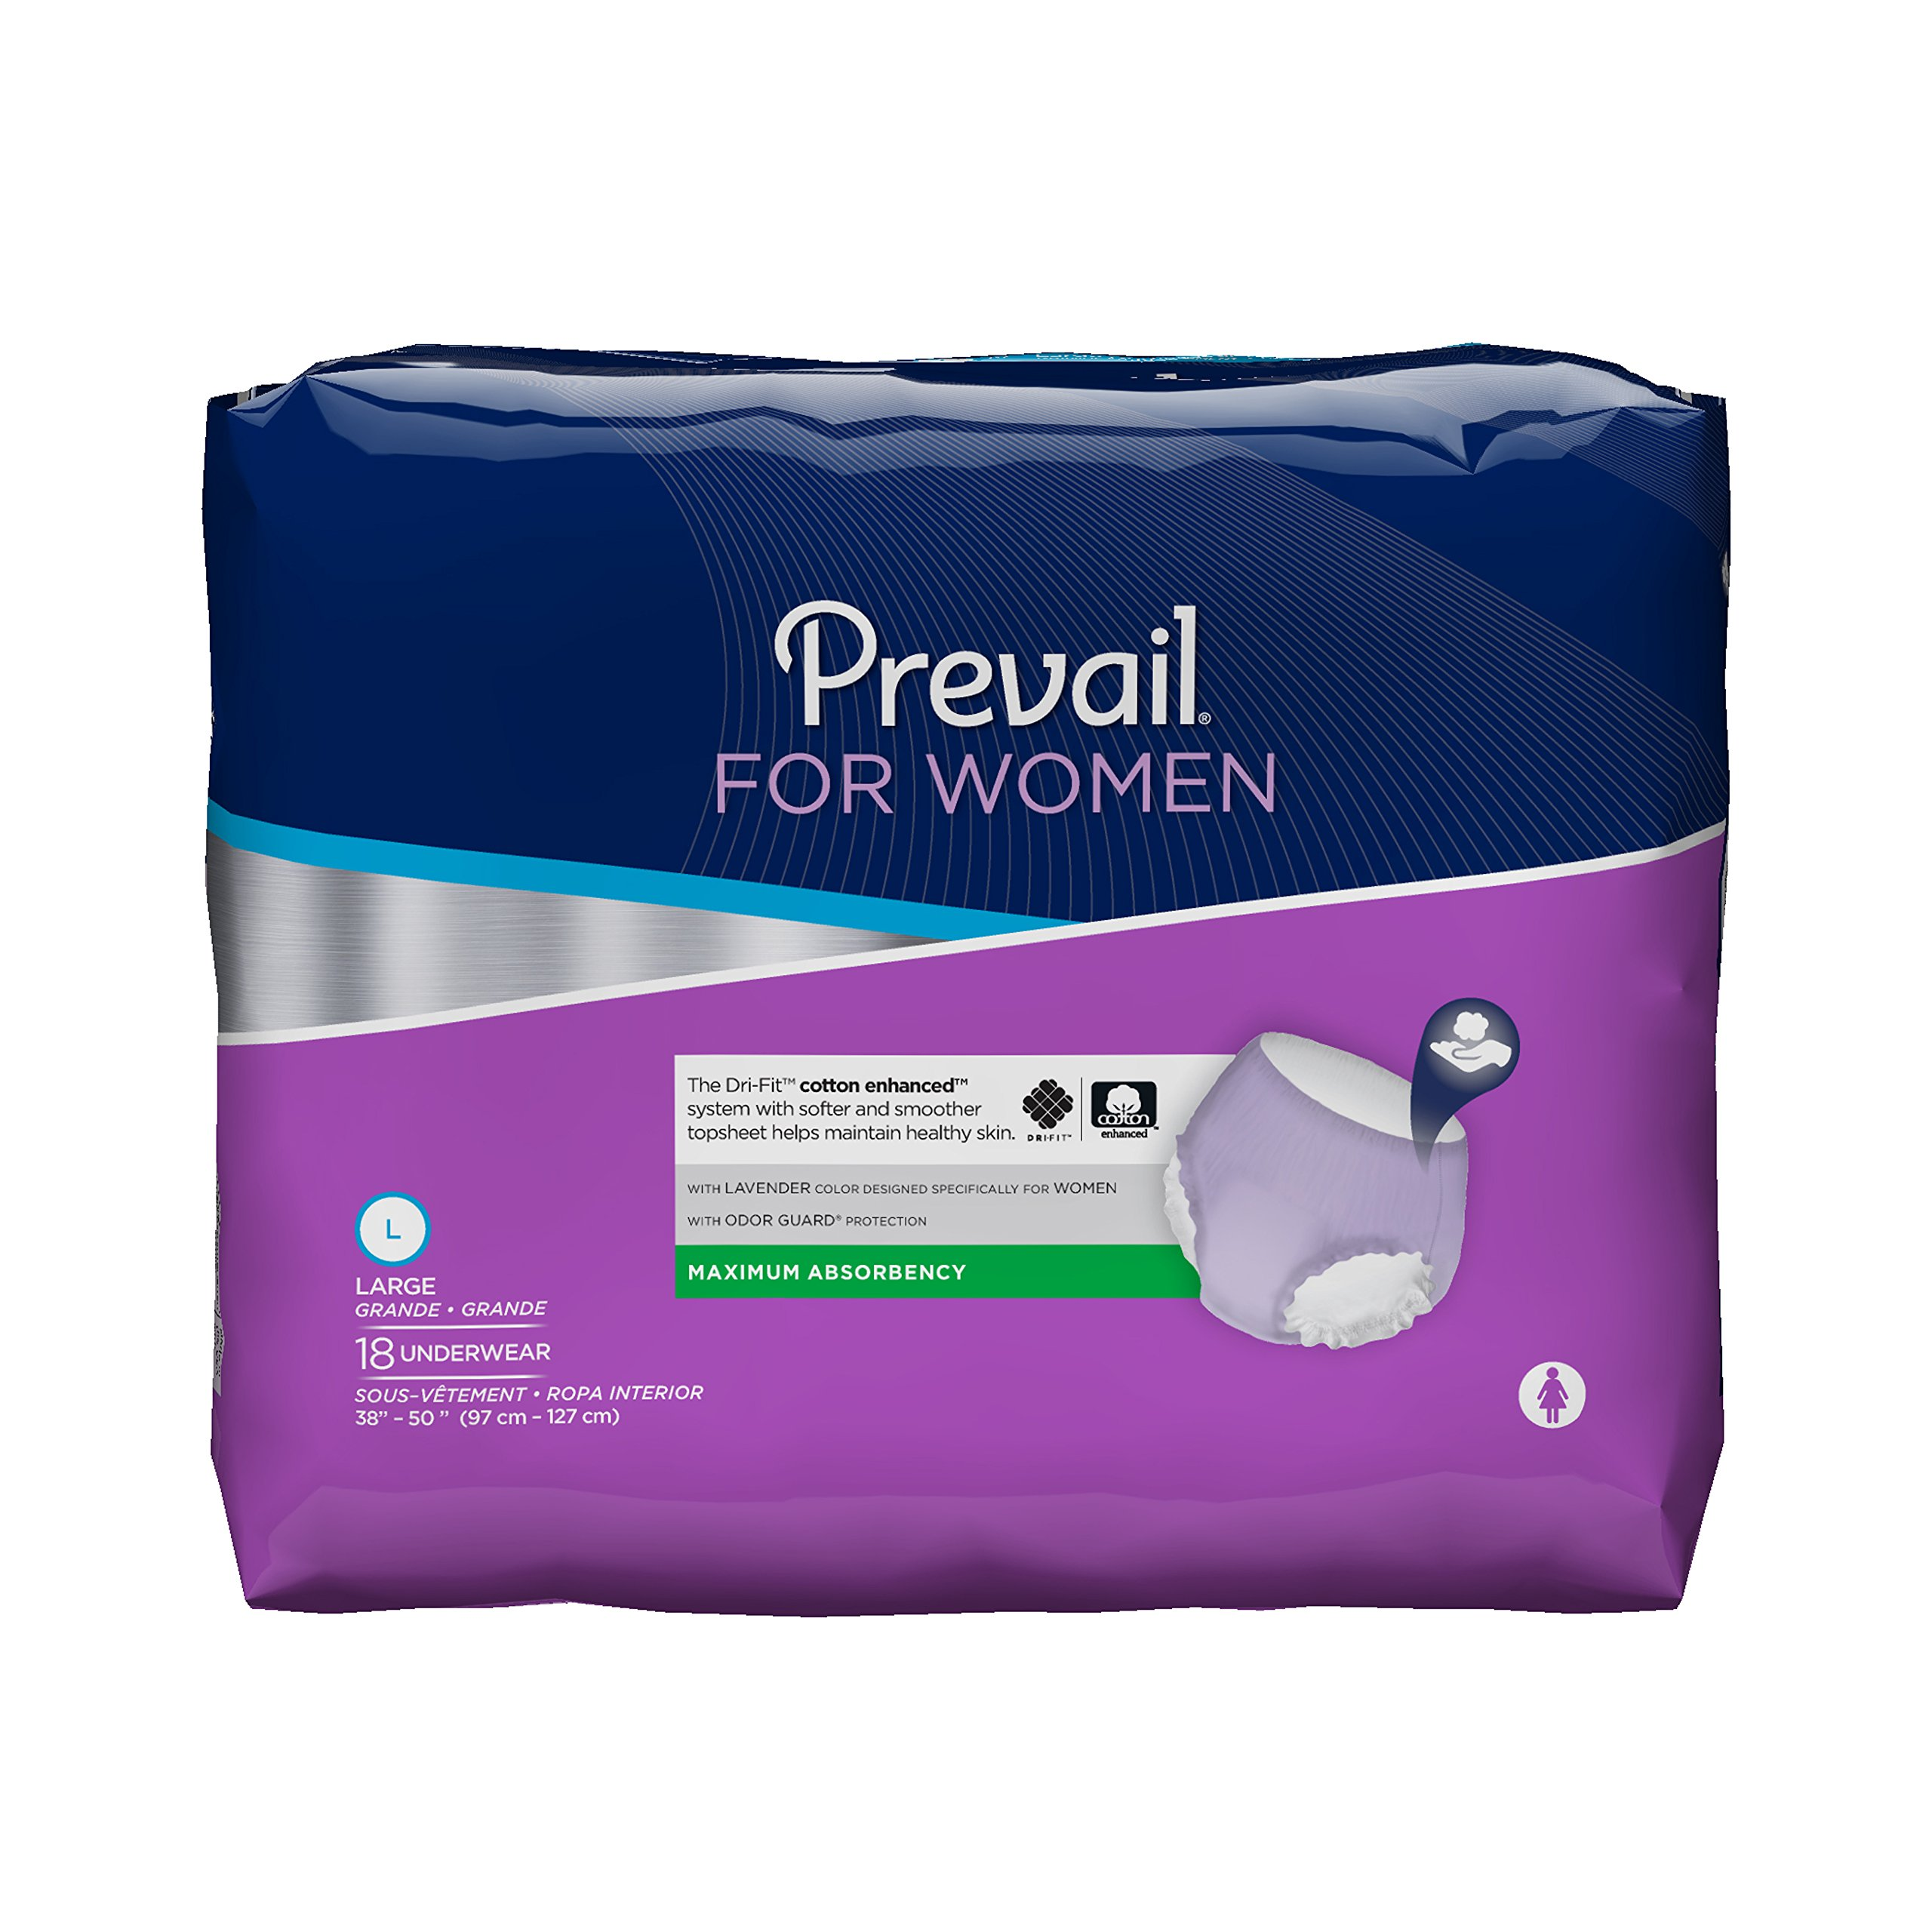 Prevail Maximum Absorbency Incontinence Underwear for Women, Large, 18-Count